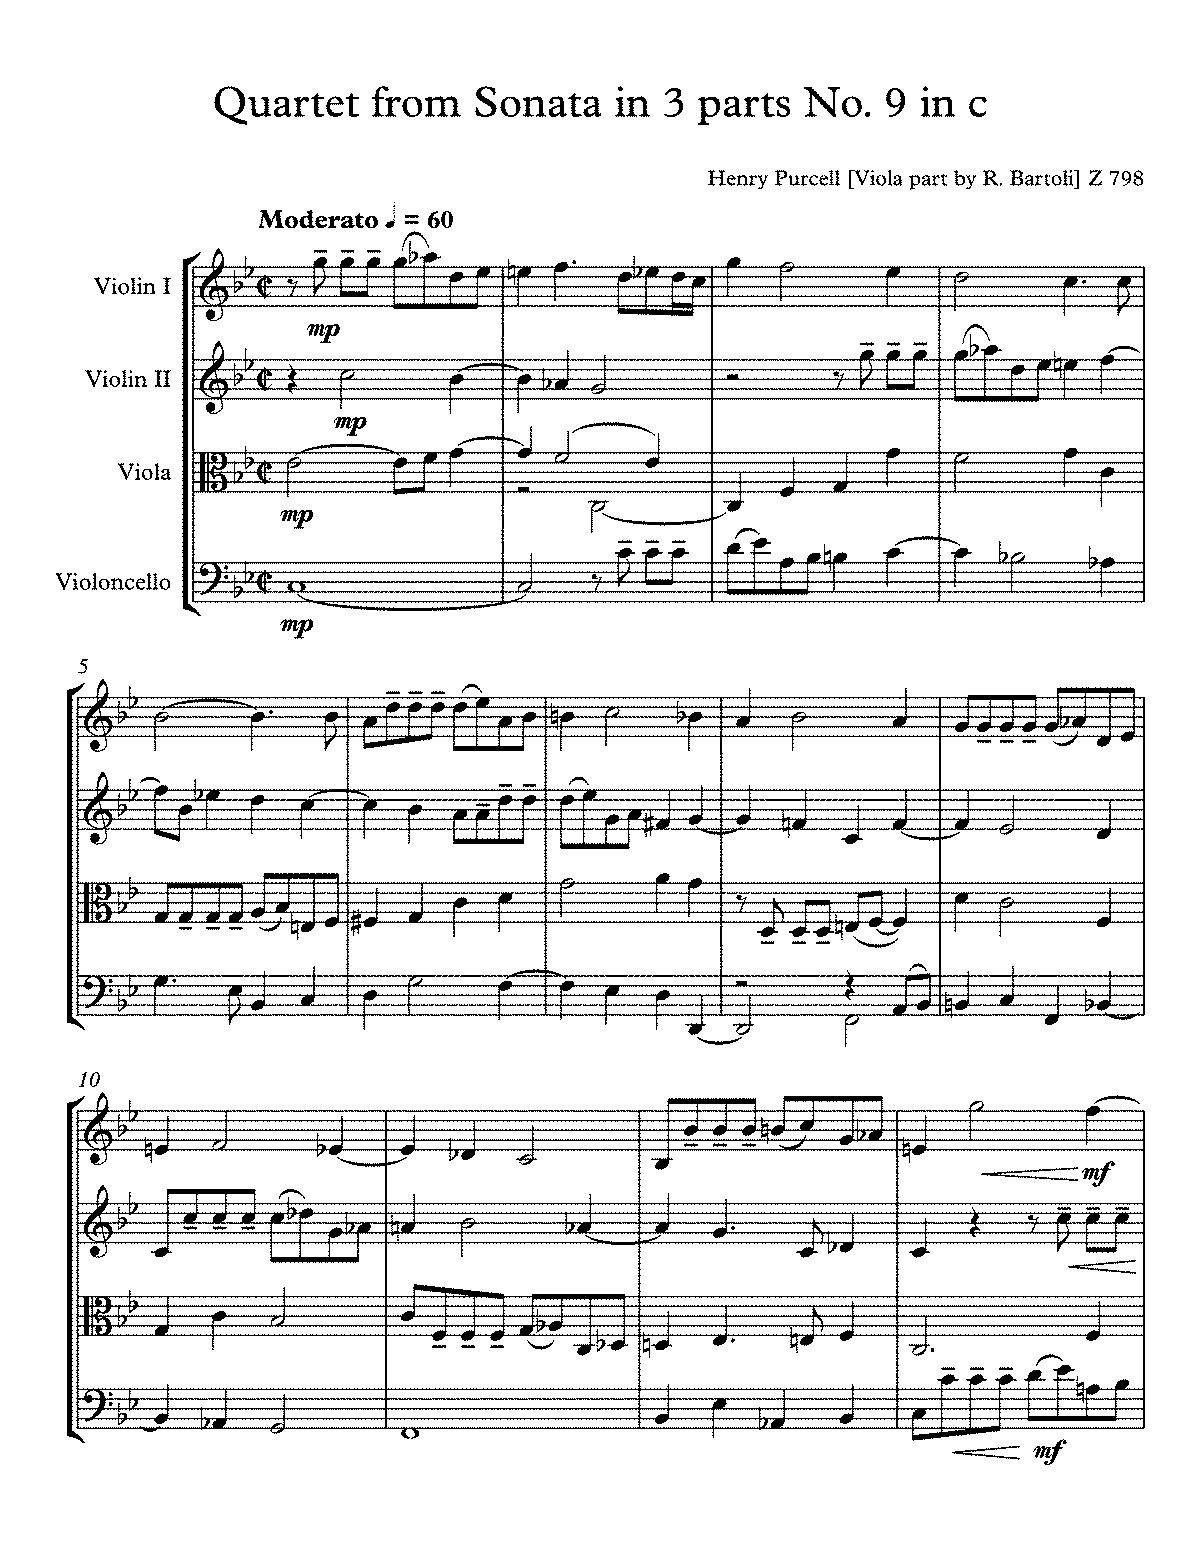 PMLP85673-Purcell Z 798 Sonata No. 9 in c s4 Va part russ D - Full Score.pdf